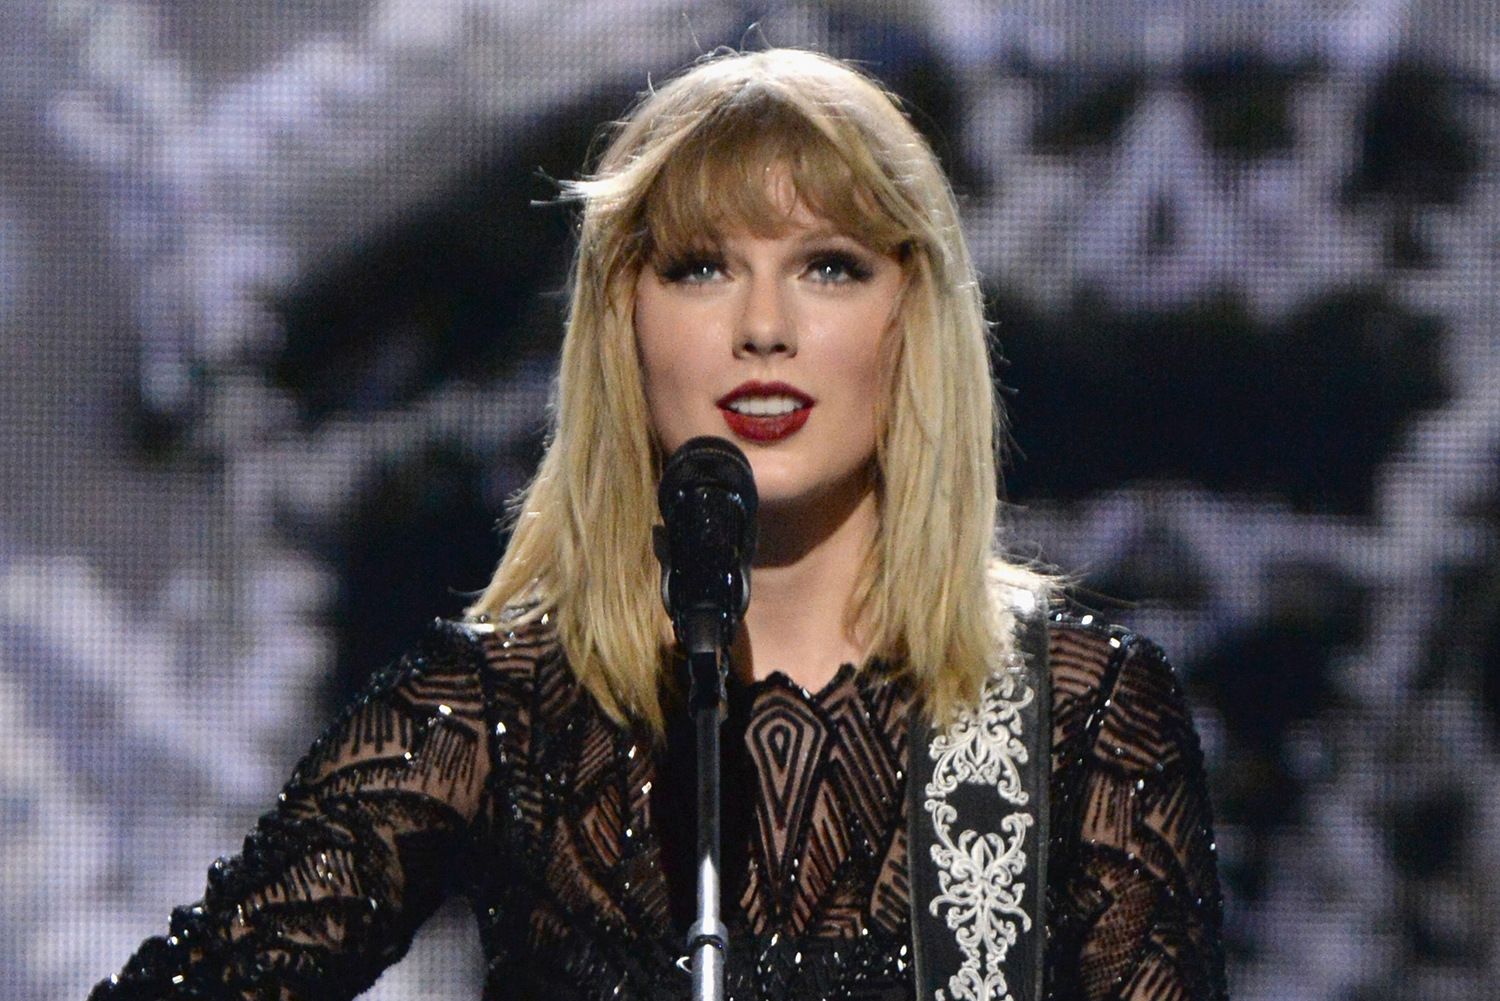 Taylor Swift Confirms Tour Of Australia And New Zealand In ...